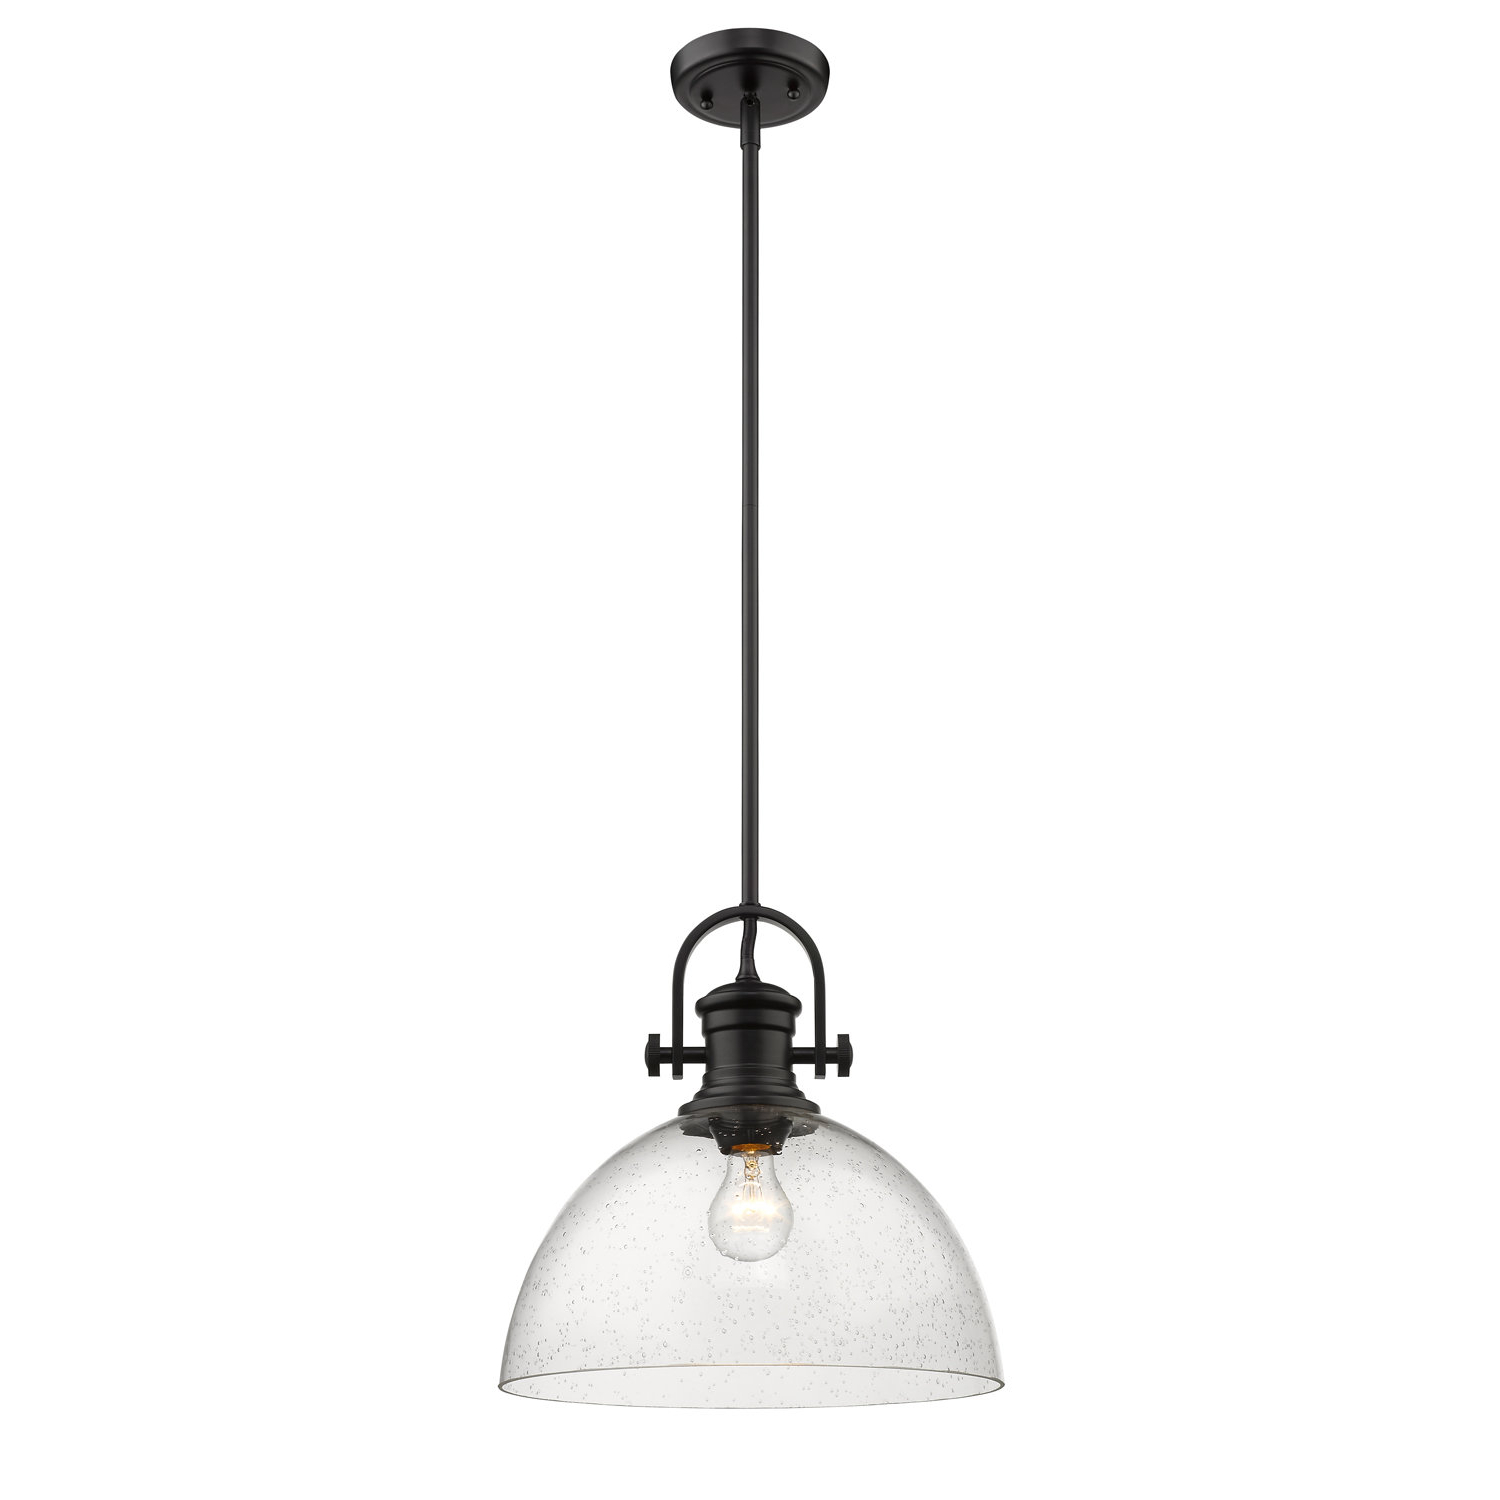 Macon 1 Light Single Dome Pendants For Widely Used Vedder 1 Light Dome Pendant (View 10 of 25)